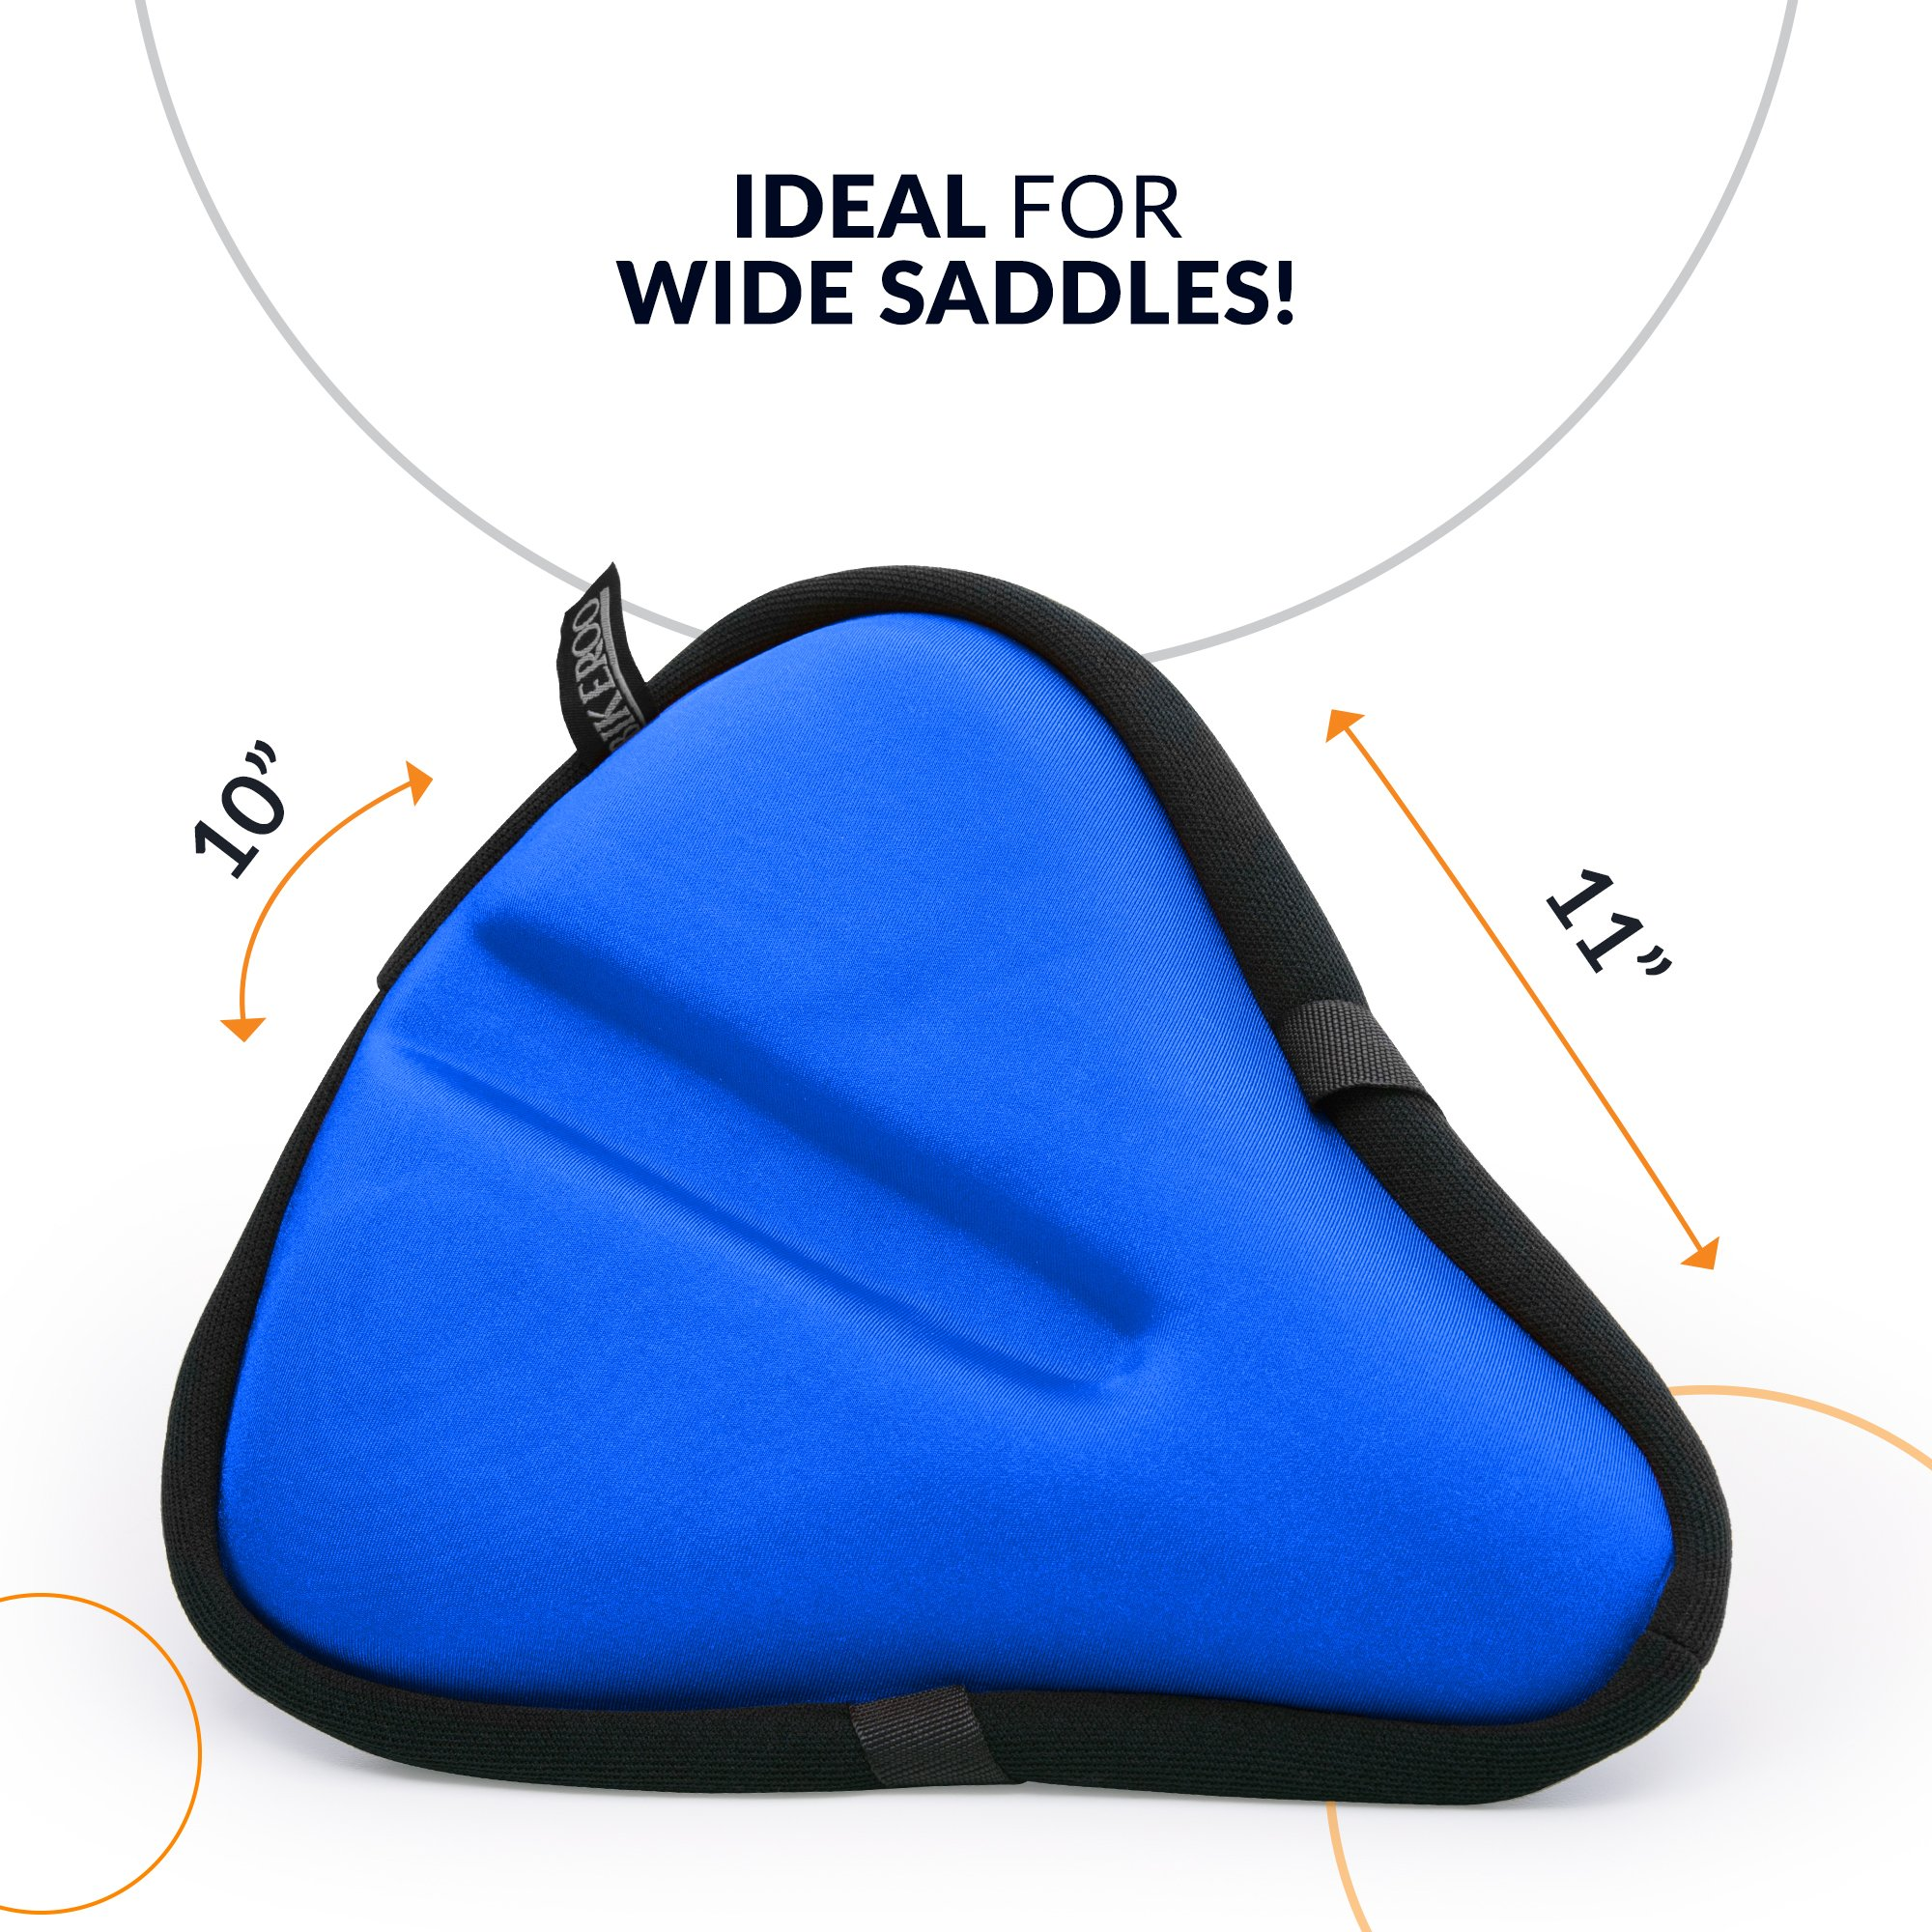 Large Exercise Bike Seat Cushion - Bicycle Wide Gel Soft Pad 10 inches x 11 inches - Most Comfortable Bicycle Saddle Cover for Women and Men - Bike Seat Gel Cover Fits Cruiser and Stationary Bikes by Bikeroo (Image #3)